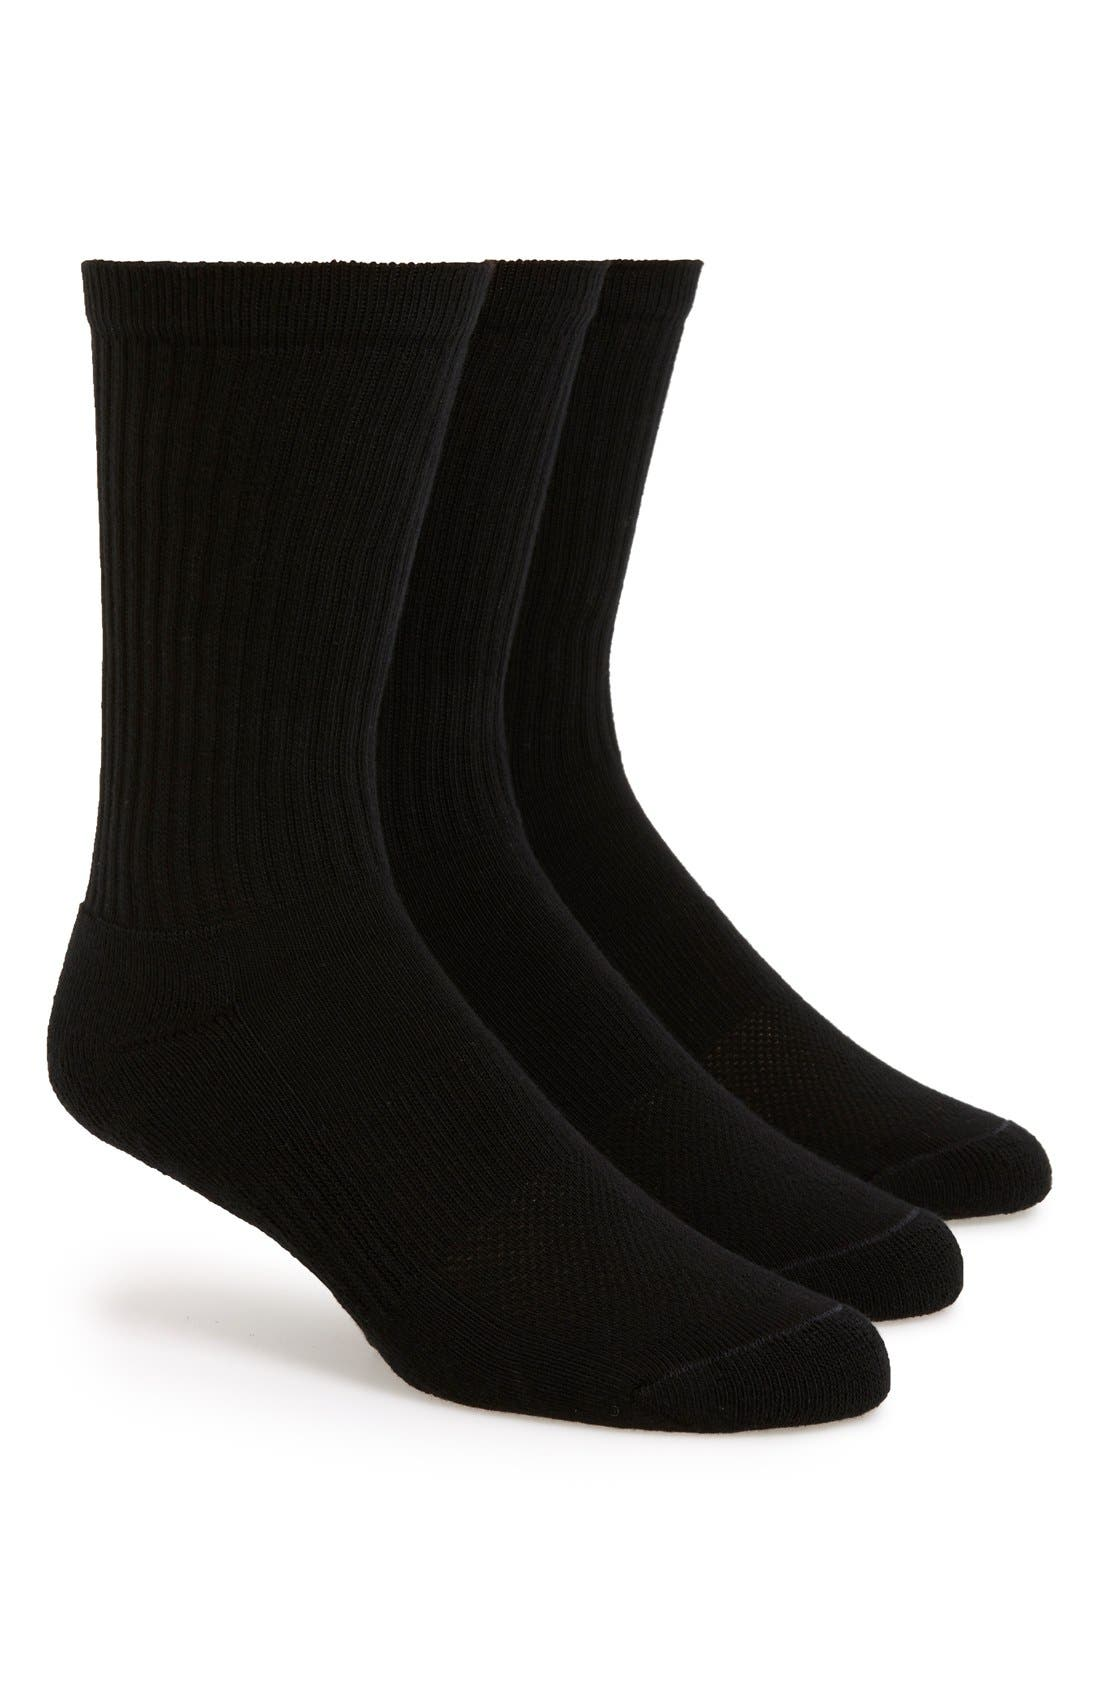 3-Pack Athletic Socks,                         Main,                         color, BLACK